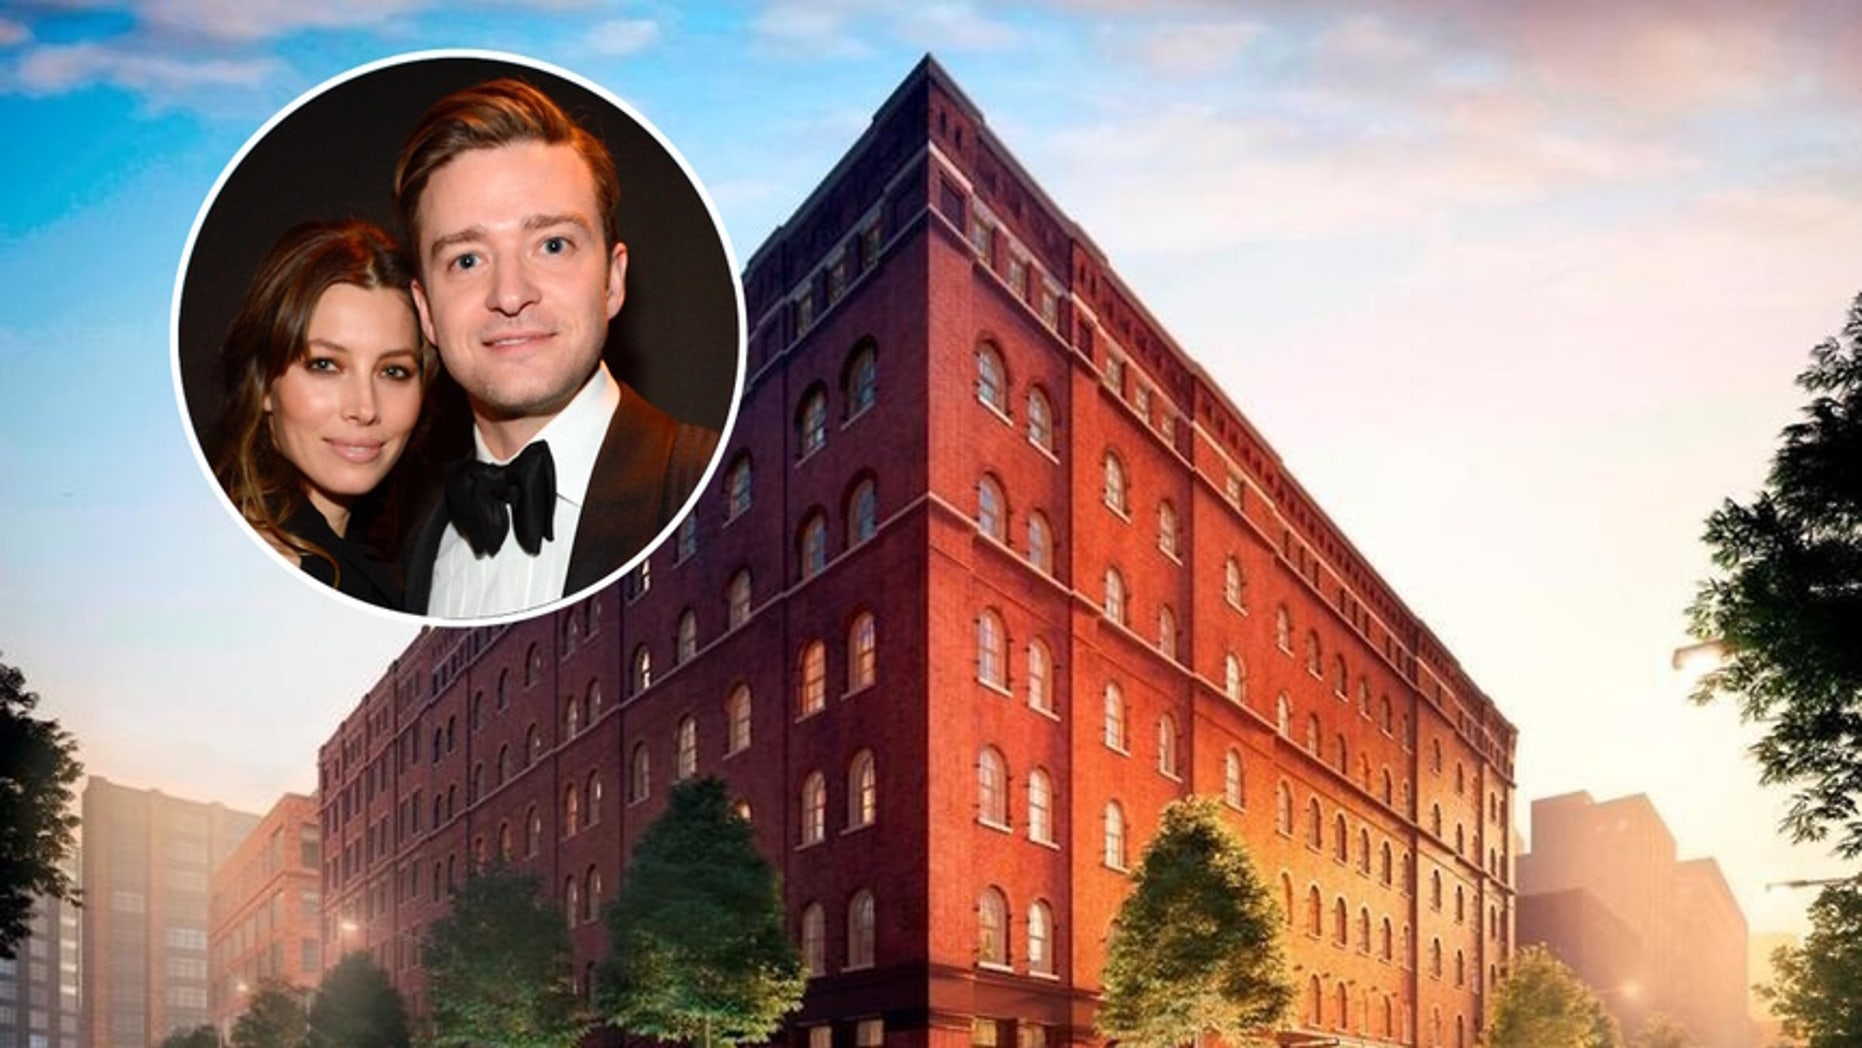 Justin Timberlake and Jessica Biel just closed on a condo in lower Manhattan.